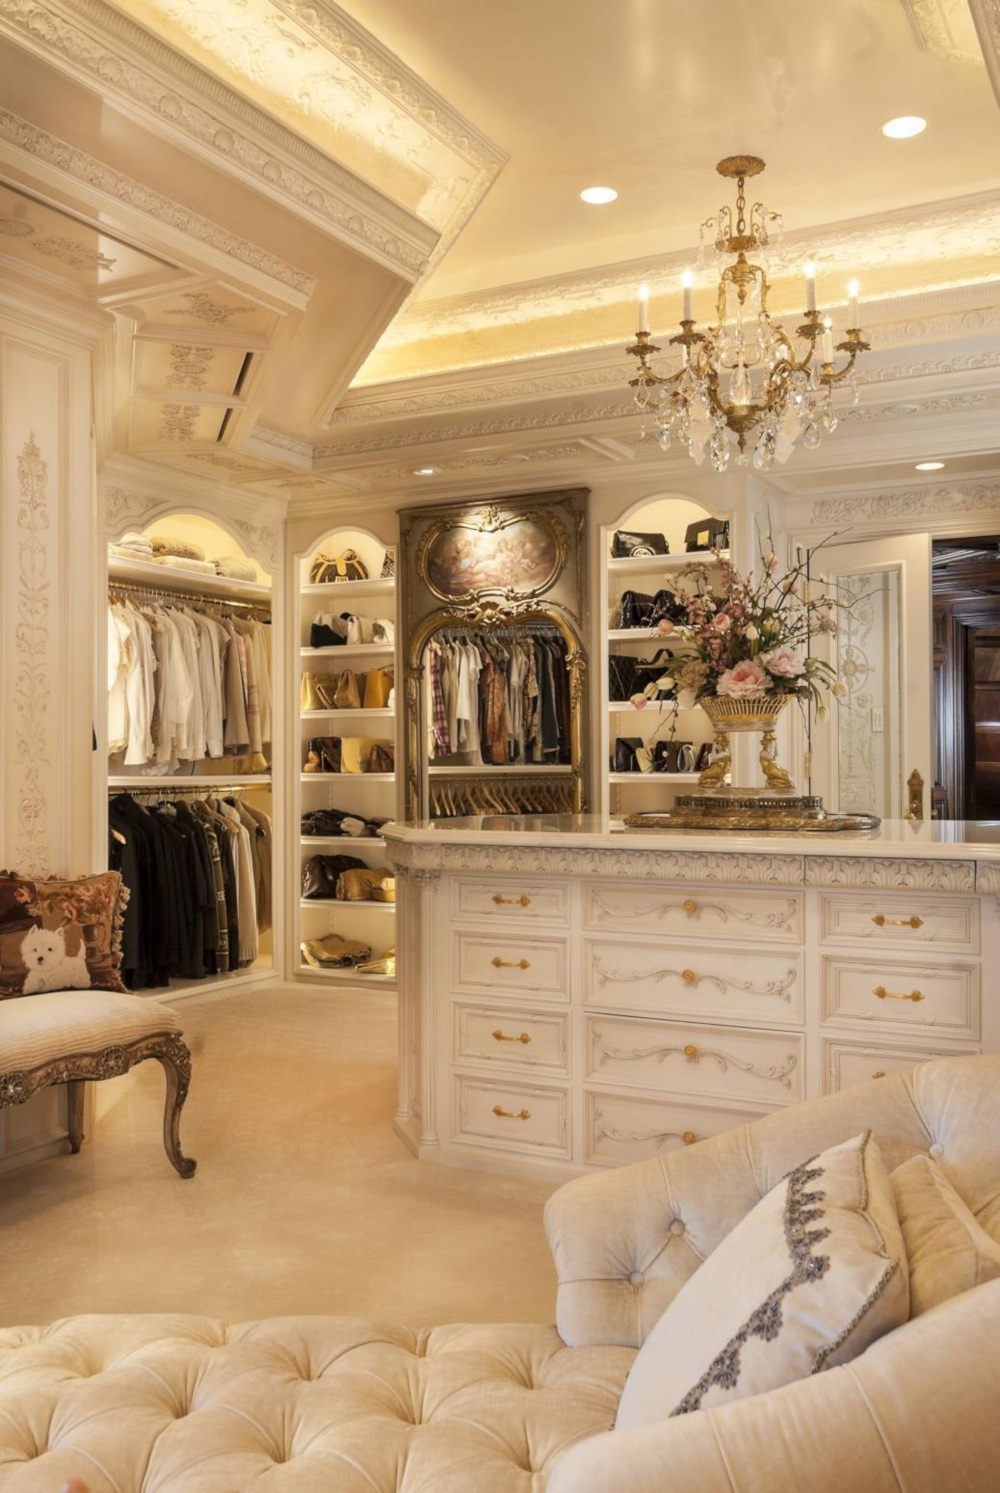 5 Luxury Closet Decor Ideas Interior Design Fall Trends 5 Stunning Interior Design Fall Trends You Don't Want to Miss 5 Luxury Closet Decor Ideas 05 Interior Design Fall Trends 5 Stunning Interior Design Fall Trends You Don't Want to Miss 5 Luxury Closet Decor Ideas 05